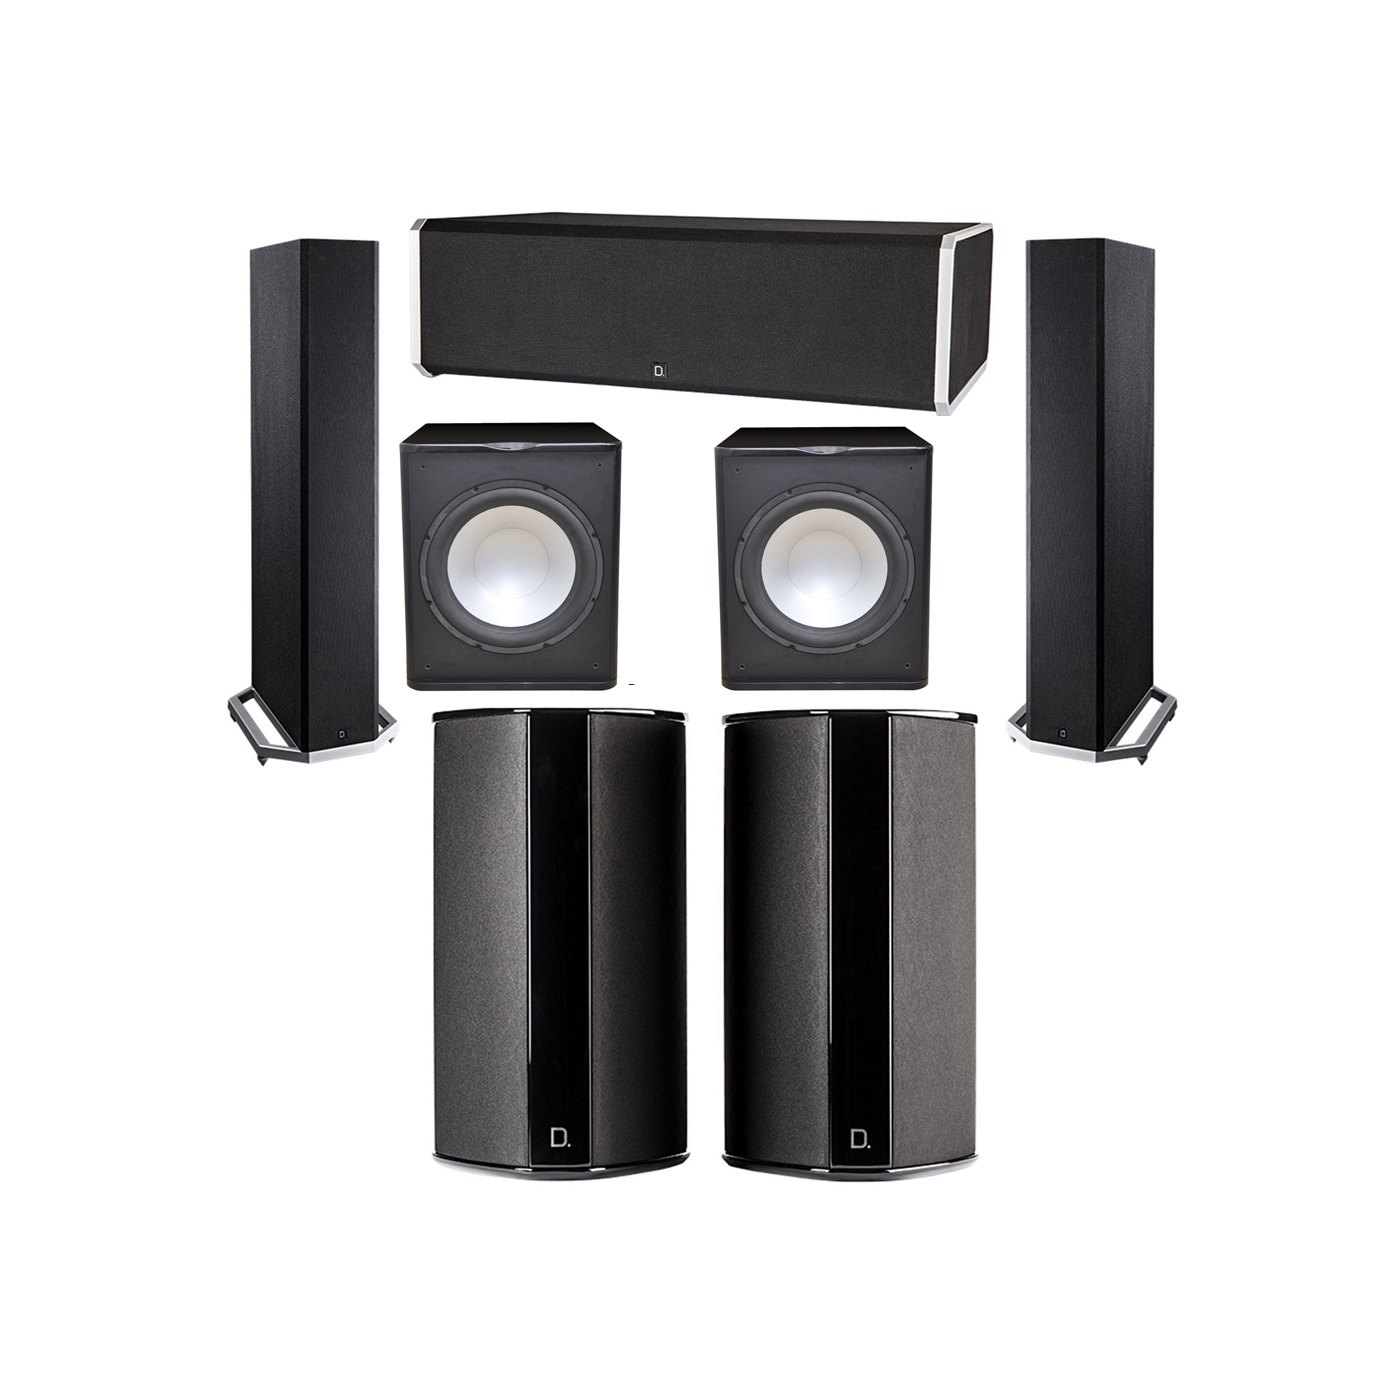 Definitive Technology 5.2 System with 2 BP9020 Tower Speakers, 1 CS9080 Center Channel Speaker, 2 SR9080 Surround Speaker, 2 Premier Acoustic PA-150 Subwoofer